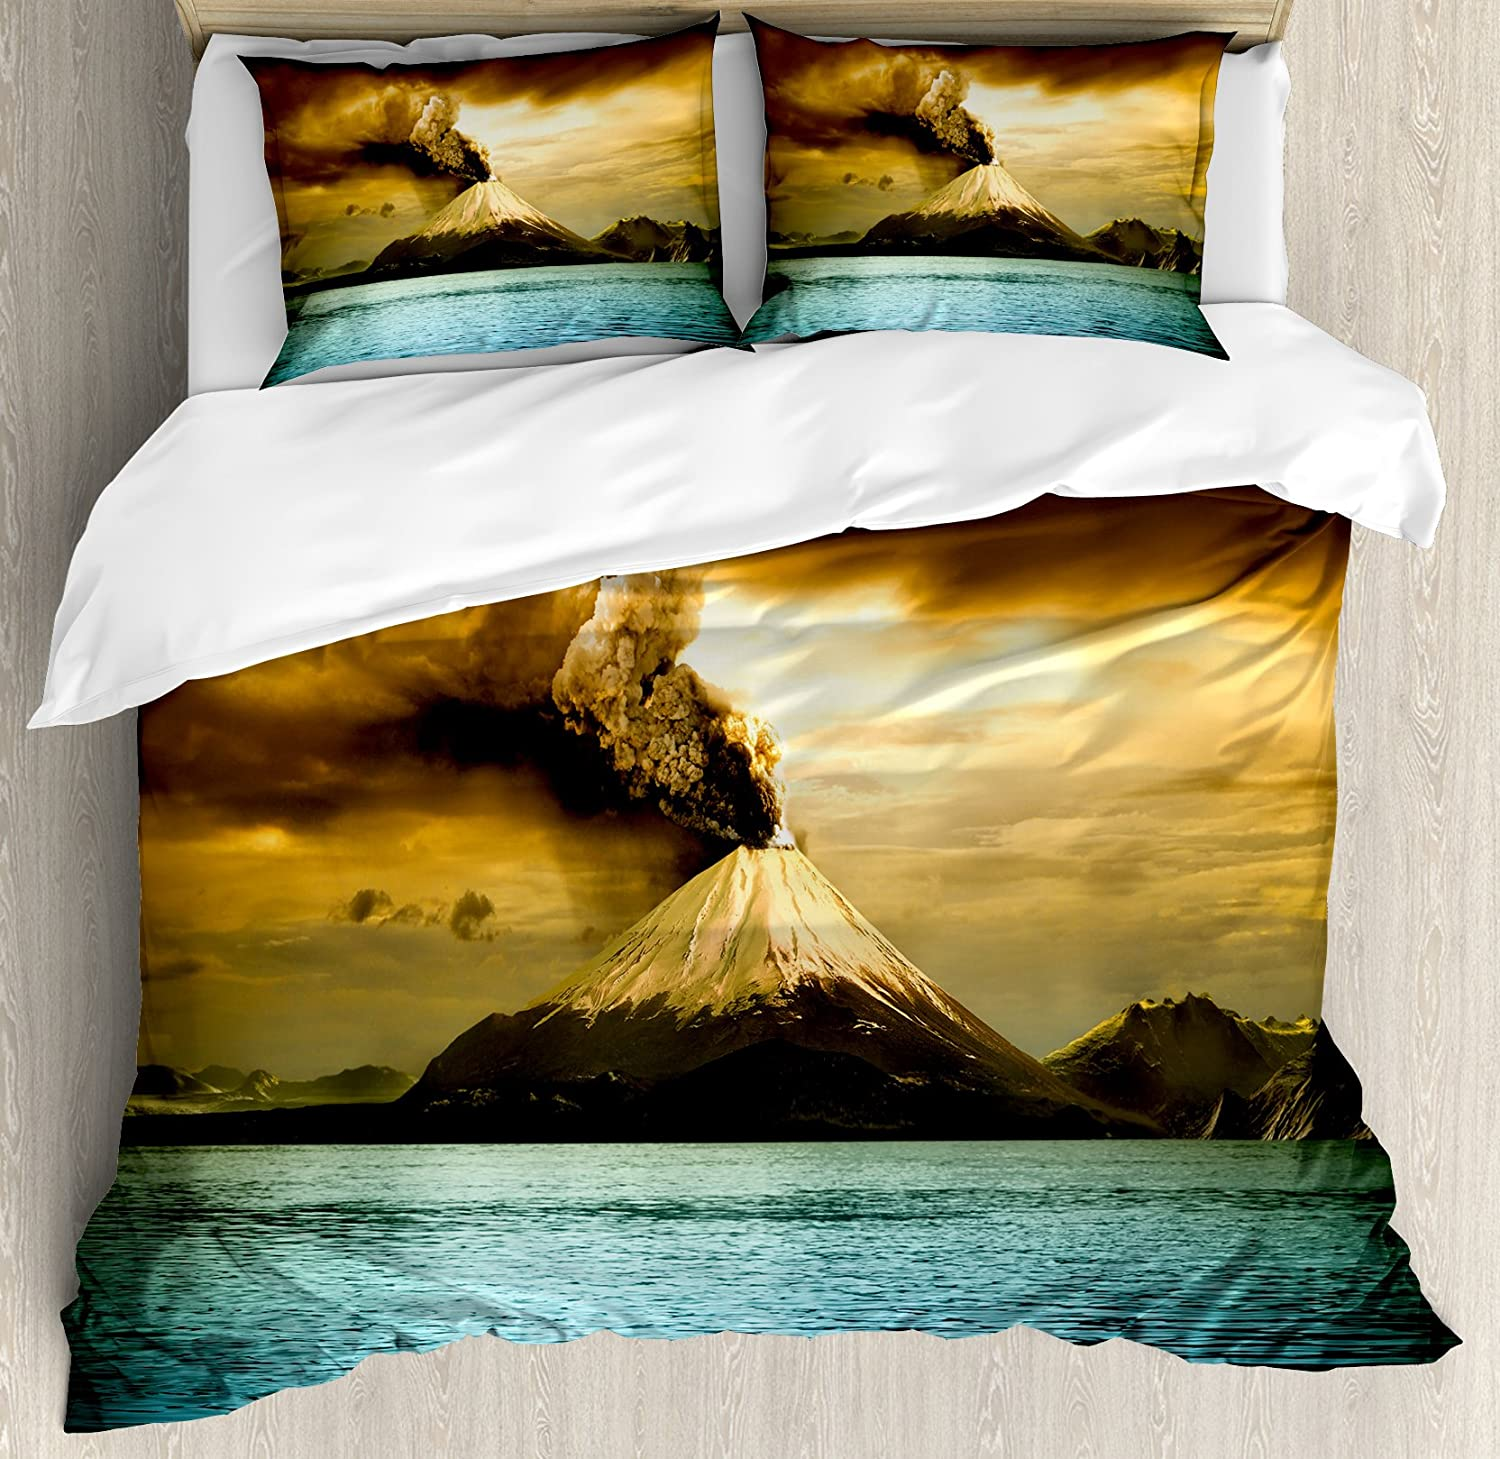 Volcano Bedding Set Queen 3 Pieces Disaster Printed Pattern Red Yellow Comforter Set Lava Duvet Cover For Adult Boys Men Teen Bedspread With Zipper Ties 1 Duvet Cover 2 Pillowcases No Comforter